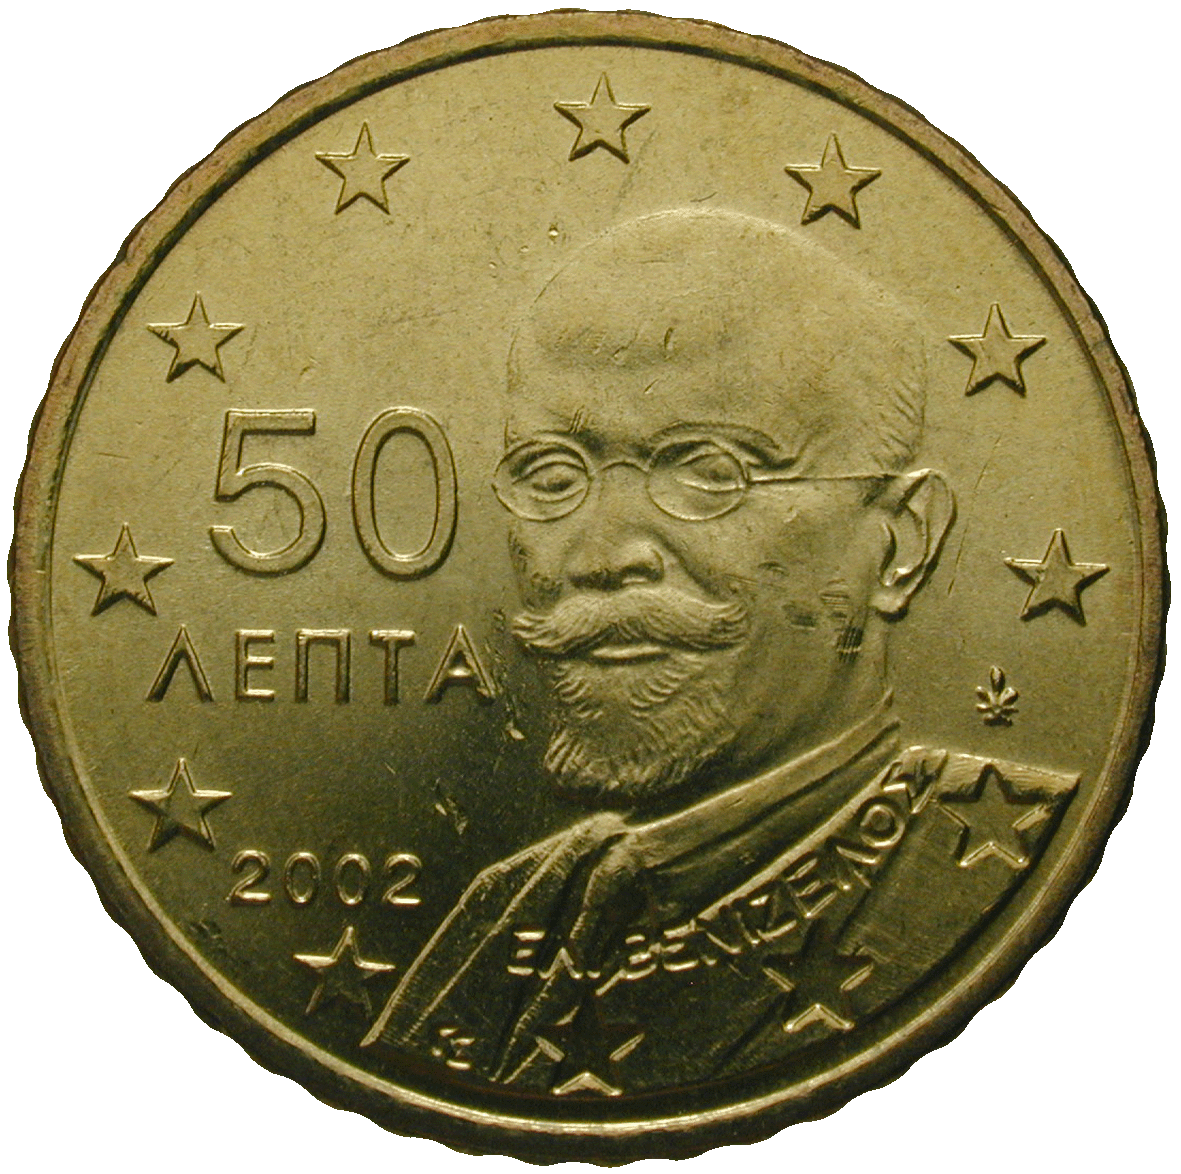 Republic of Greece, 50 Euro Cent 2002 (obverse)